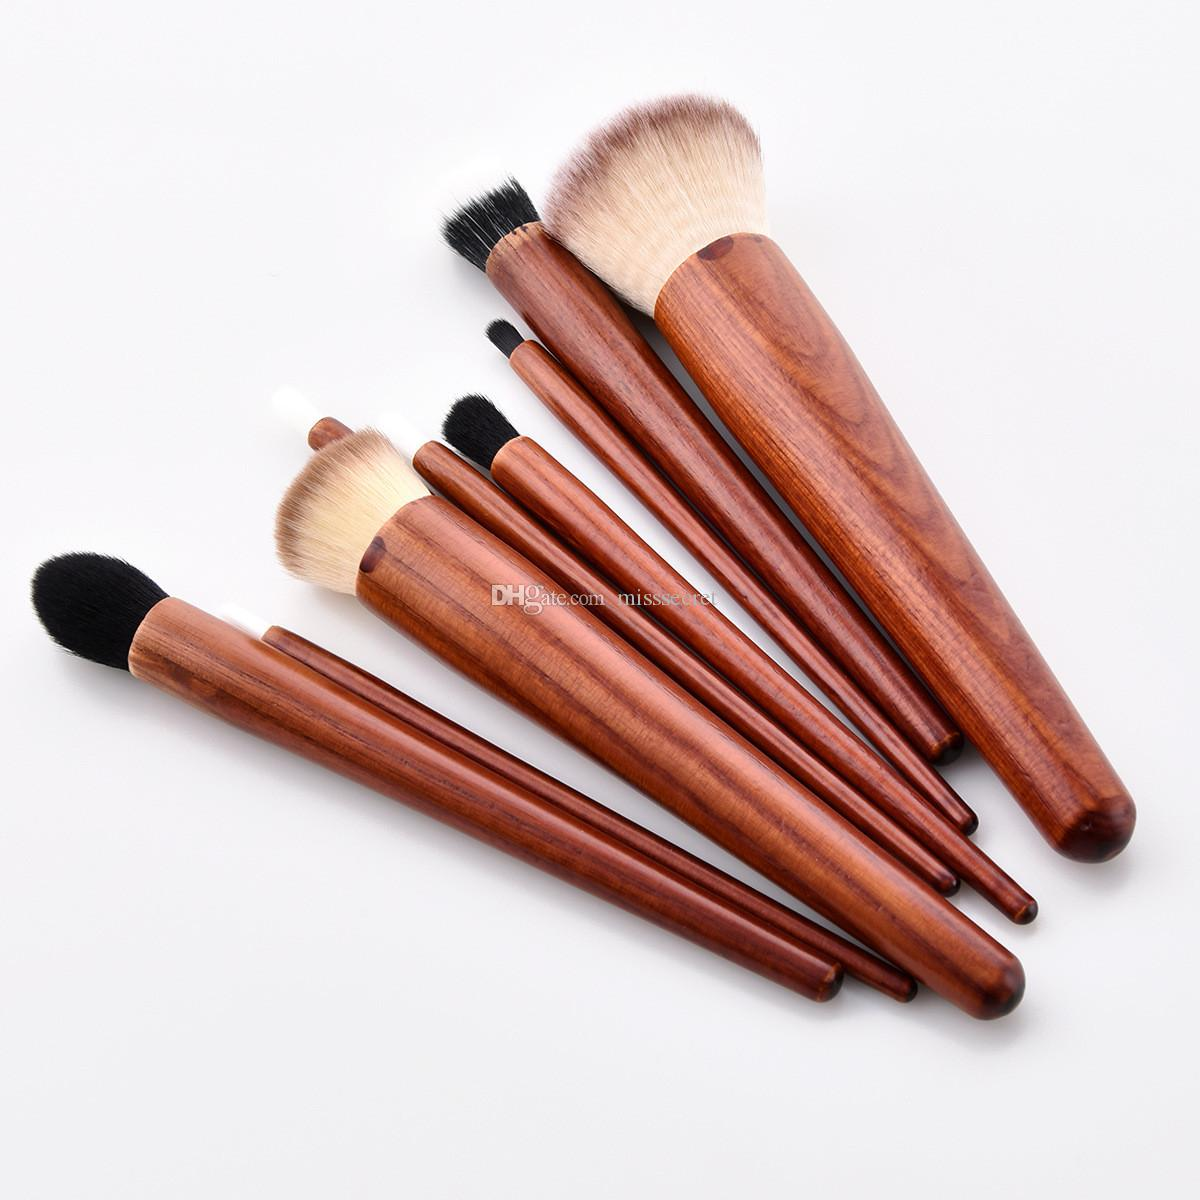 Cosmetic Makeup Brushes Set Wood Handle Foundation Power Eye Shadow Brow Concealer Blending Contour Beauty Brush Tools Kits